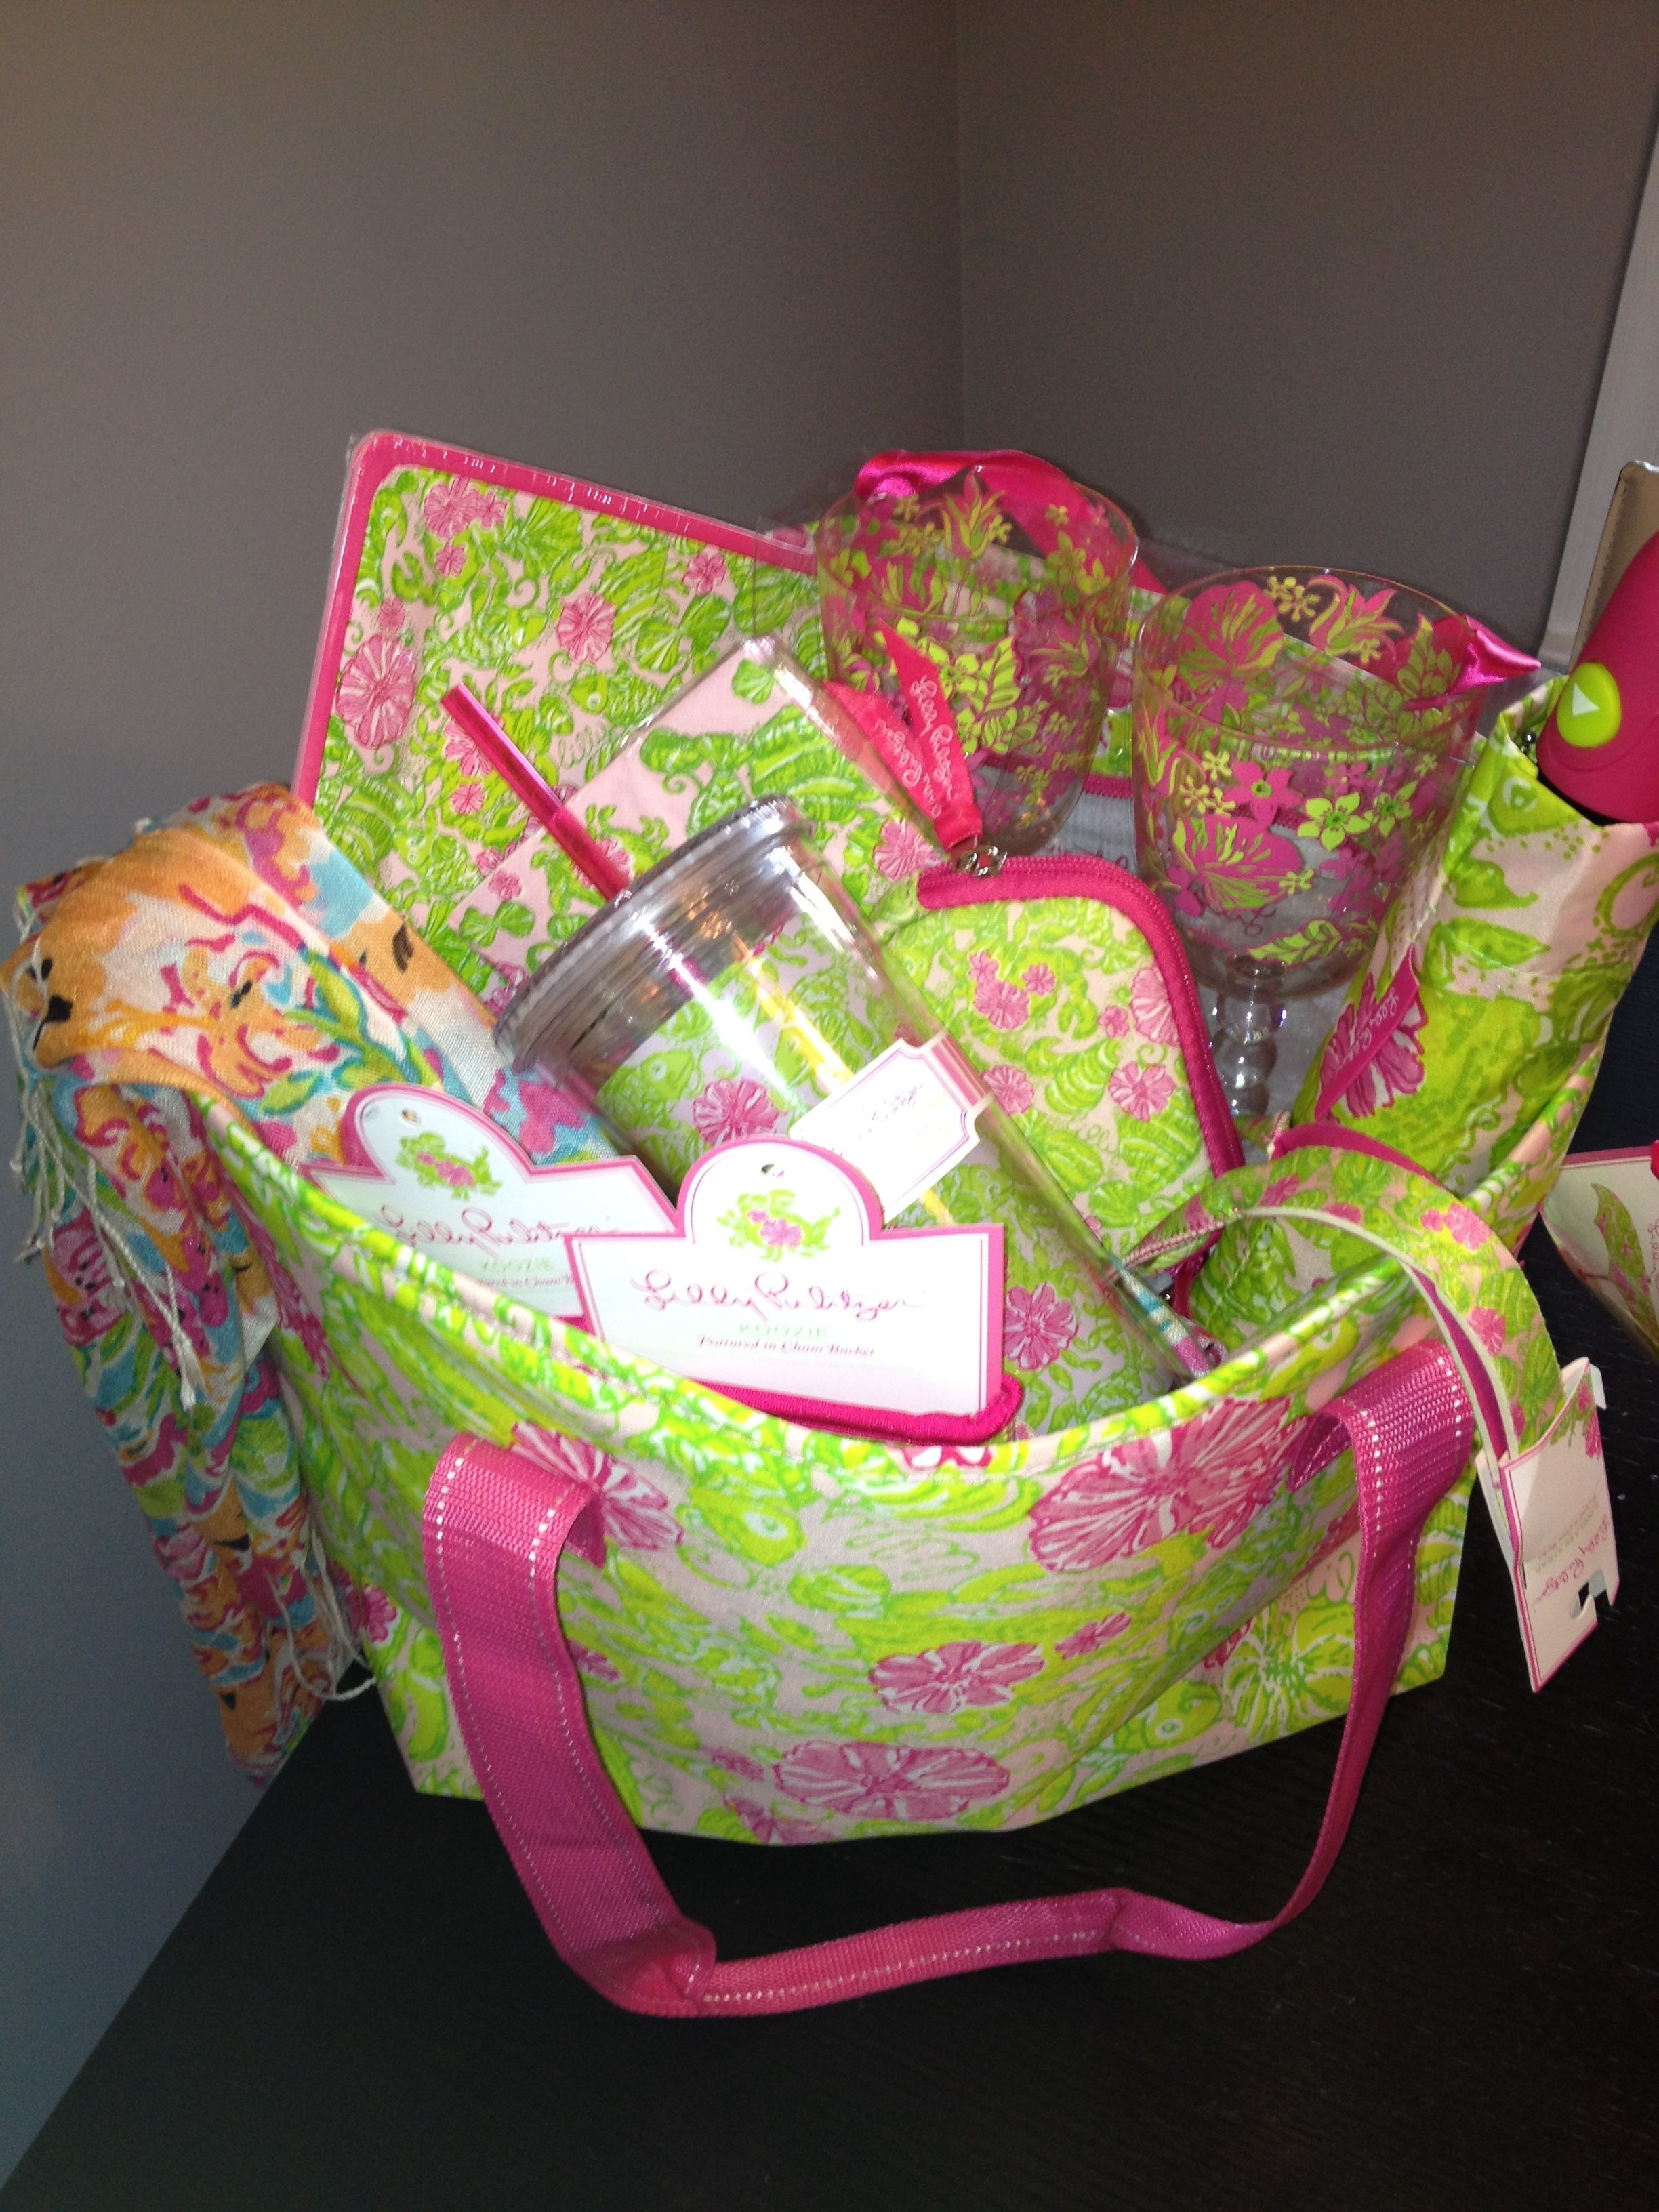 Celebrate summer in style with a gift basket courtesy of Lilly Pulitzer.